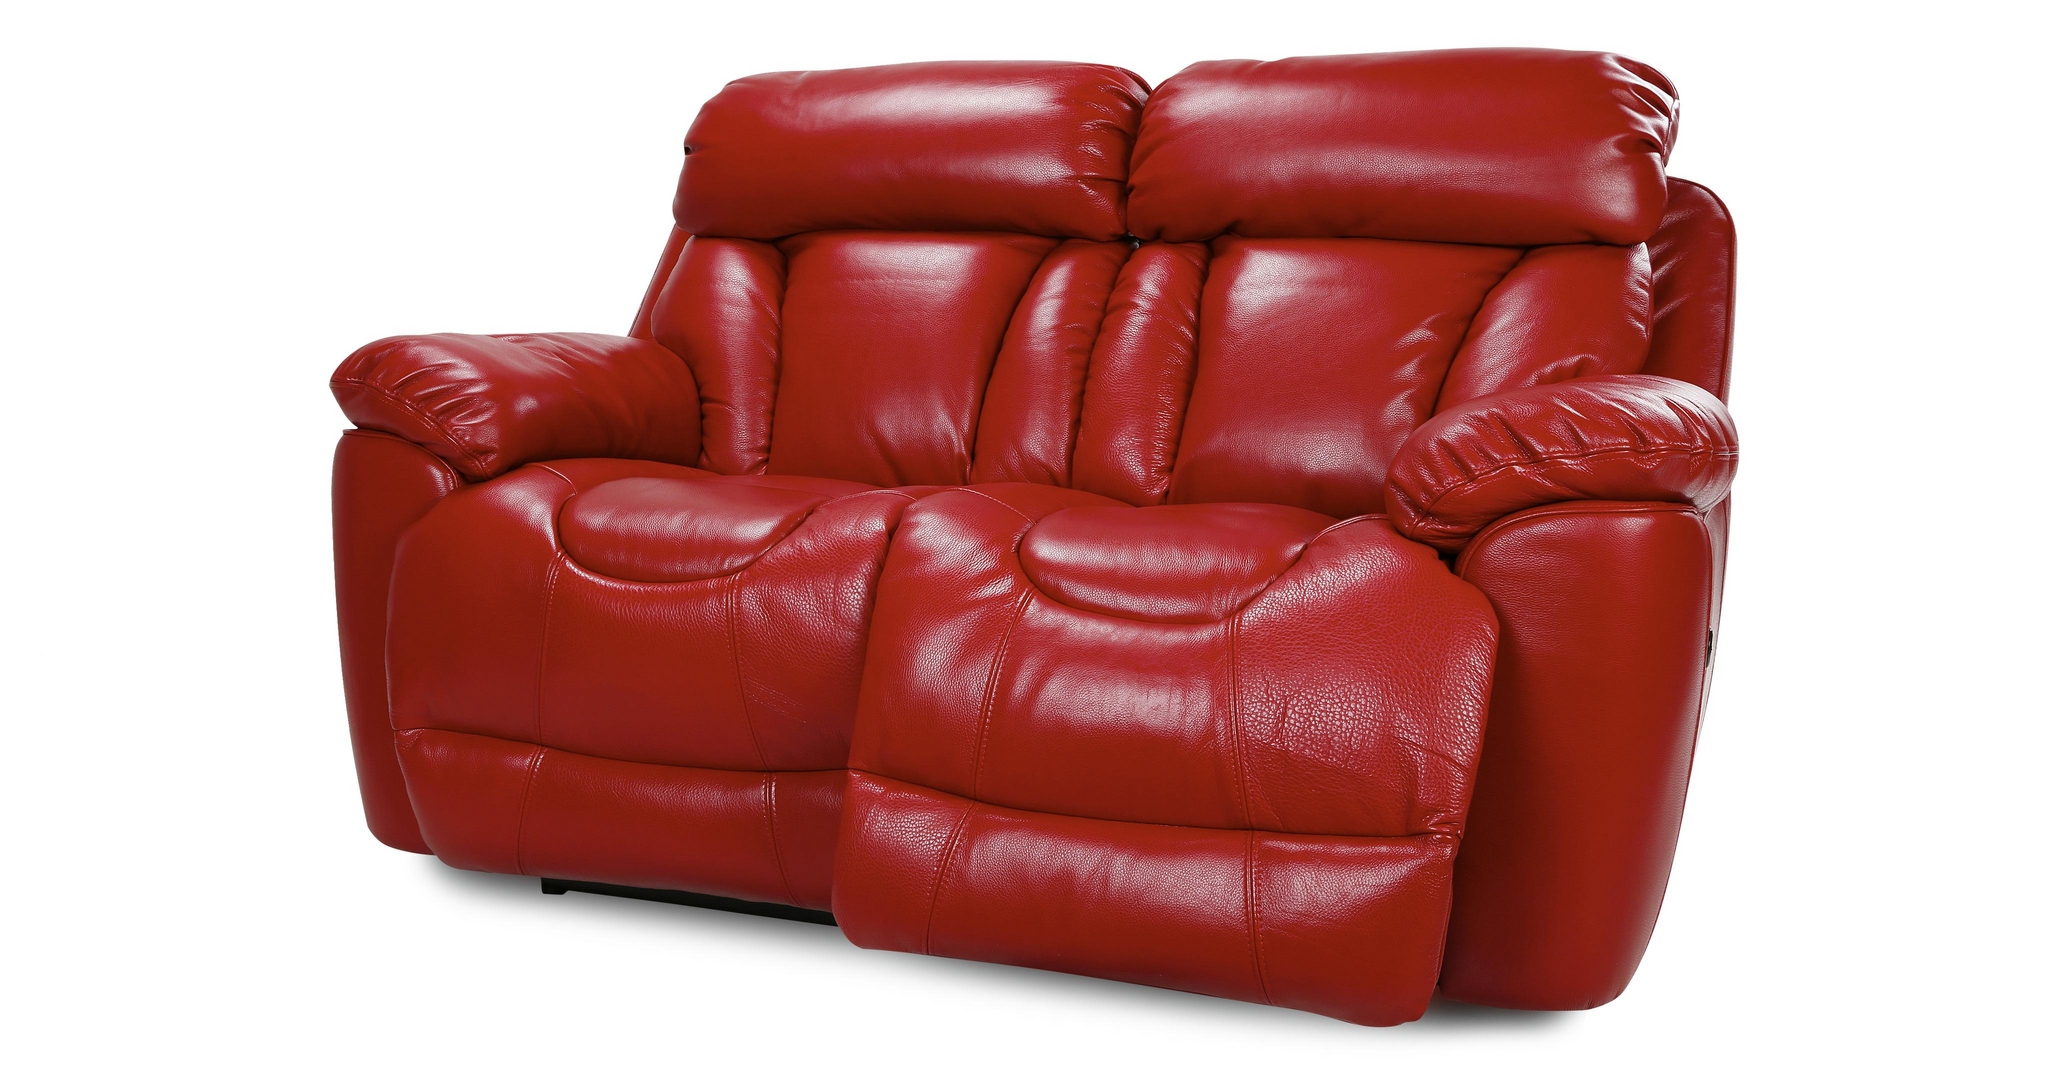 Dfs Supreme Settee 2 Seater Red Leather Power Recliner